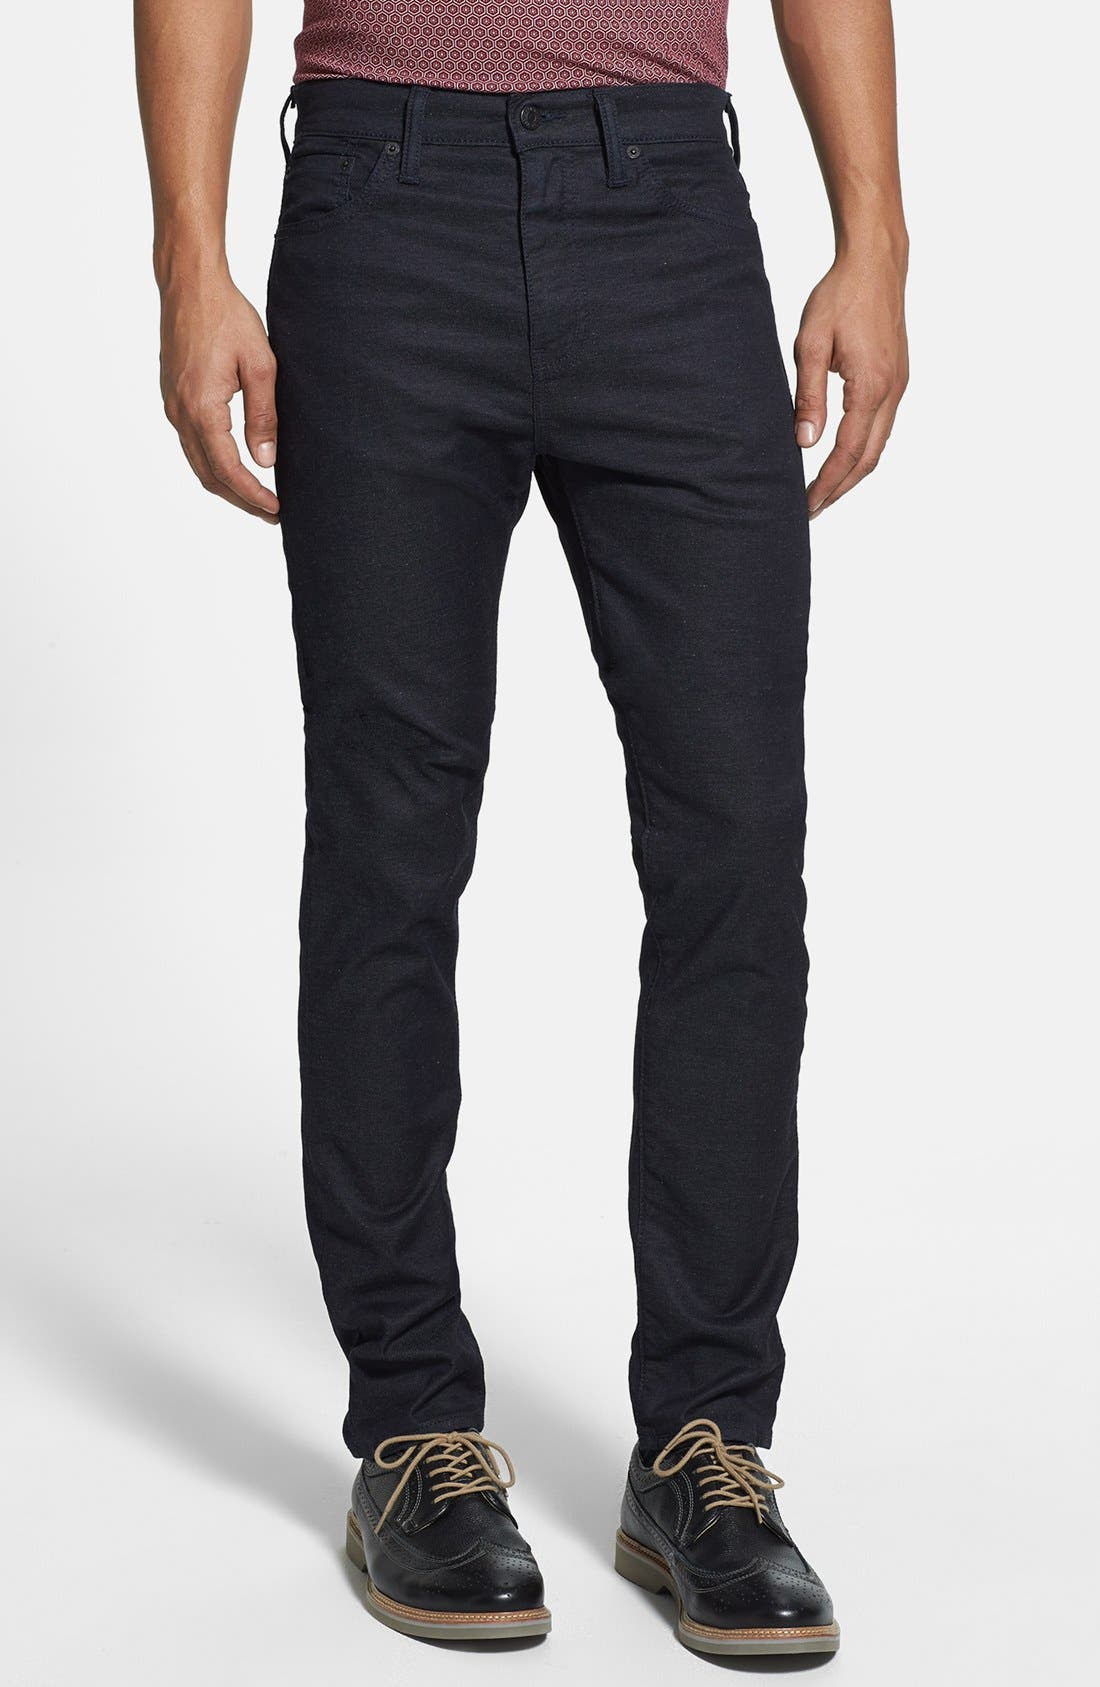 Alternate Image 1 Selected - Levi's® '513' Slim Fit Jeans (Tonic)